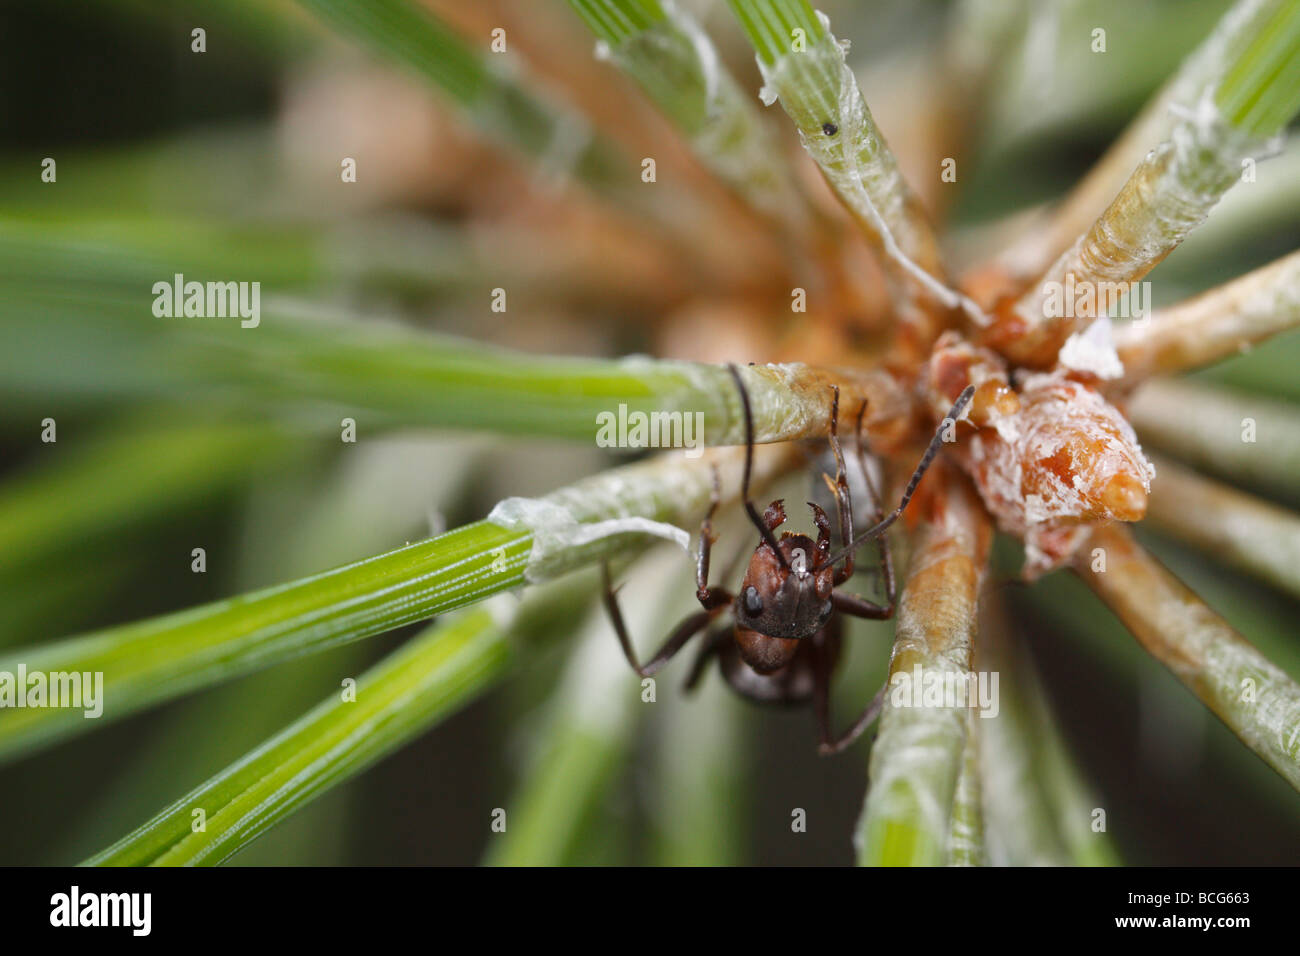 Horse ant (Formica rufa) on a pine twig. The worker is defending an aphid that can be seen below her. Stock Photo